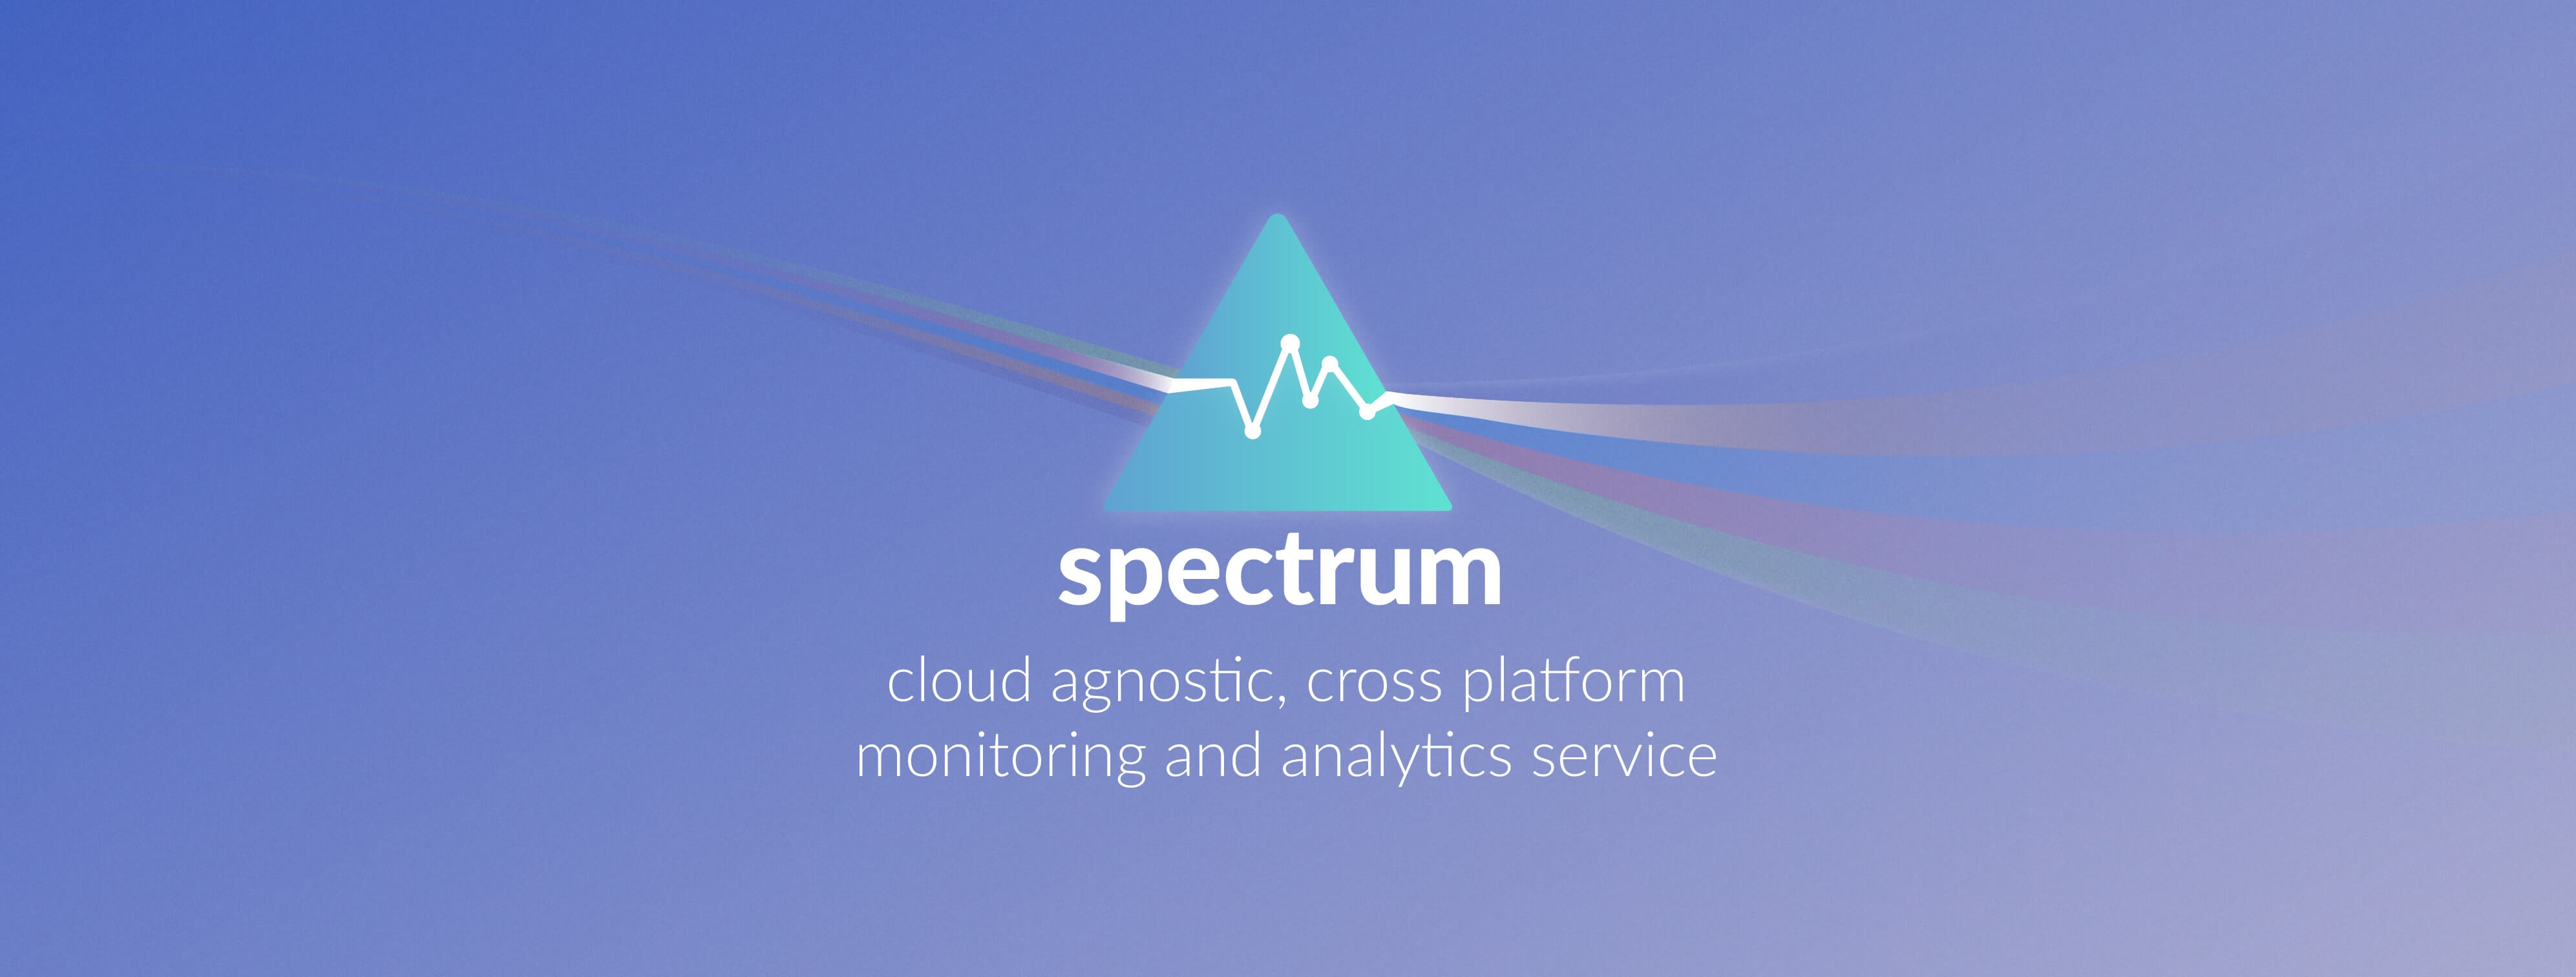 New Service Launched: Spectrum